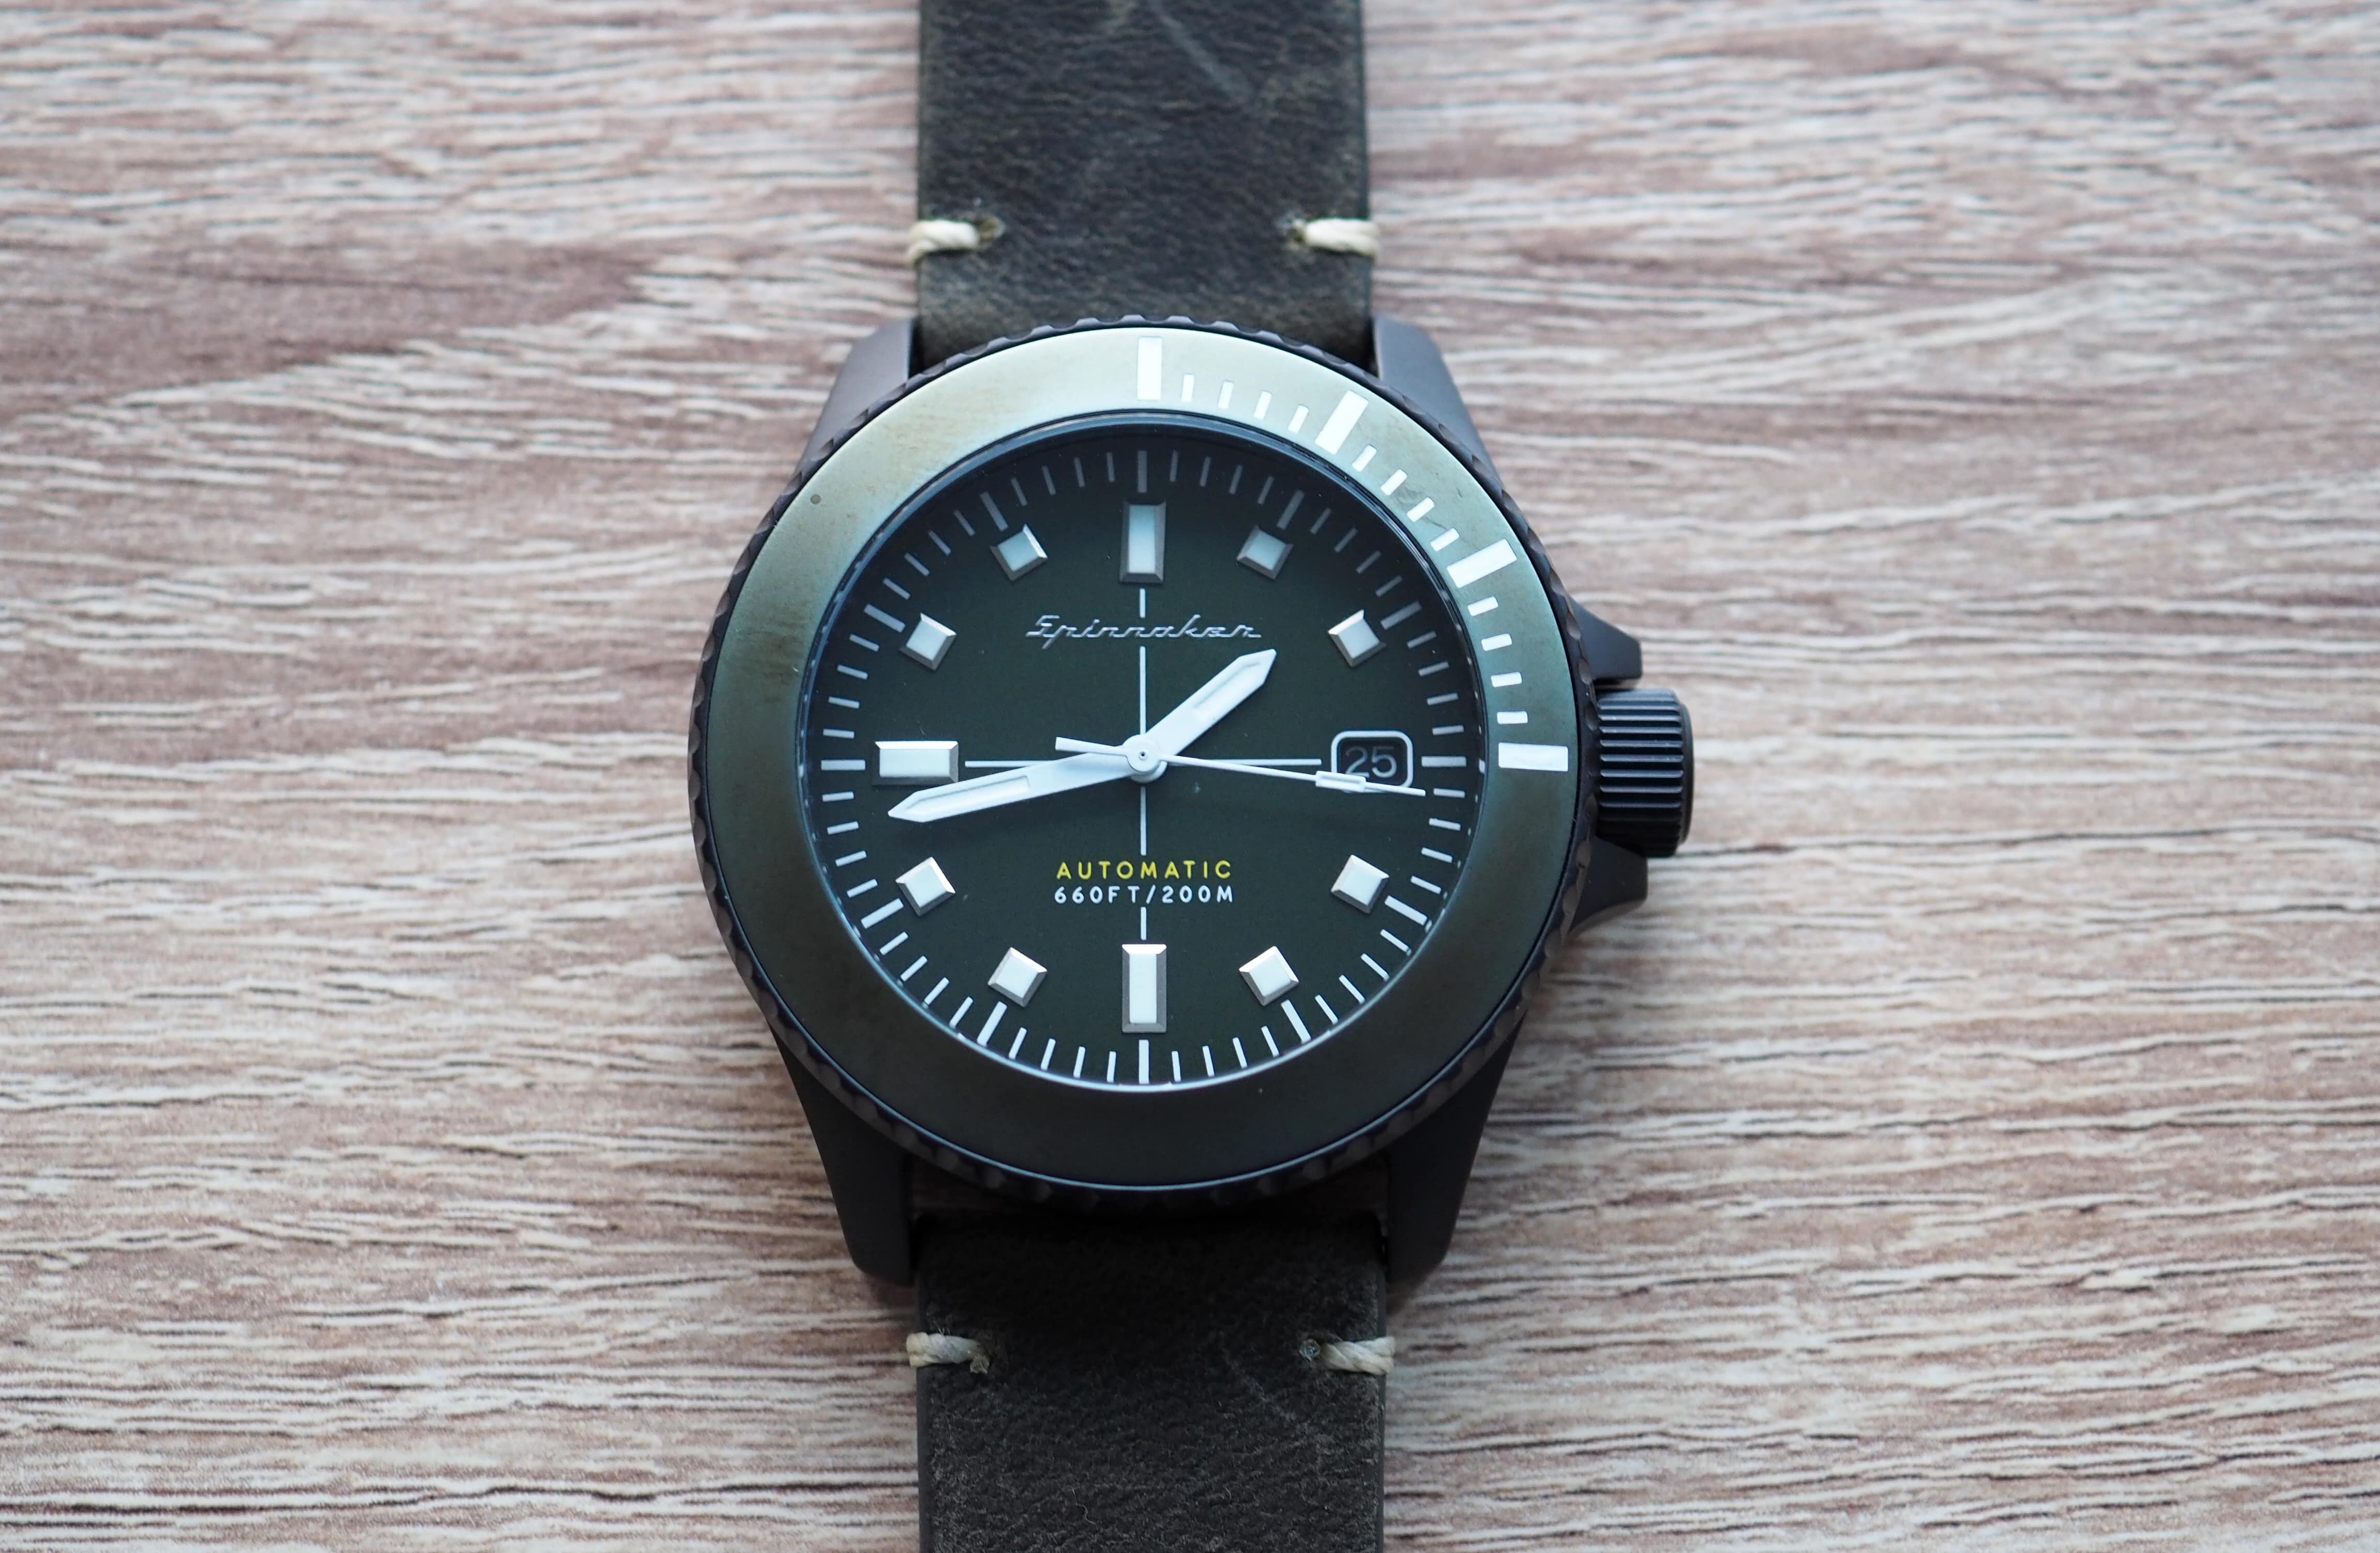 Spinnaker Spence SP-5063-03 Watch Review